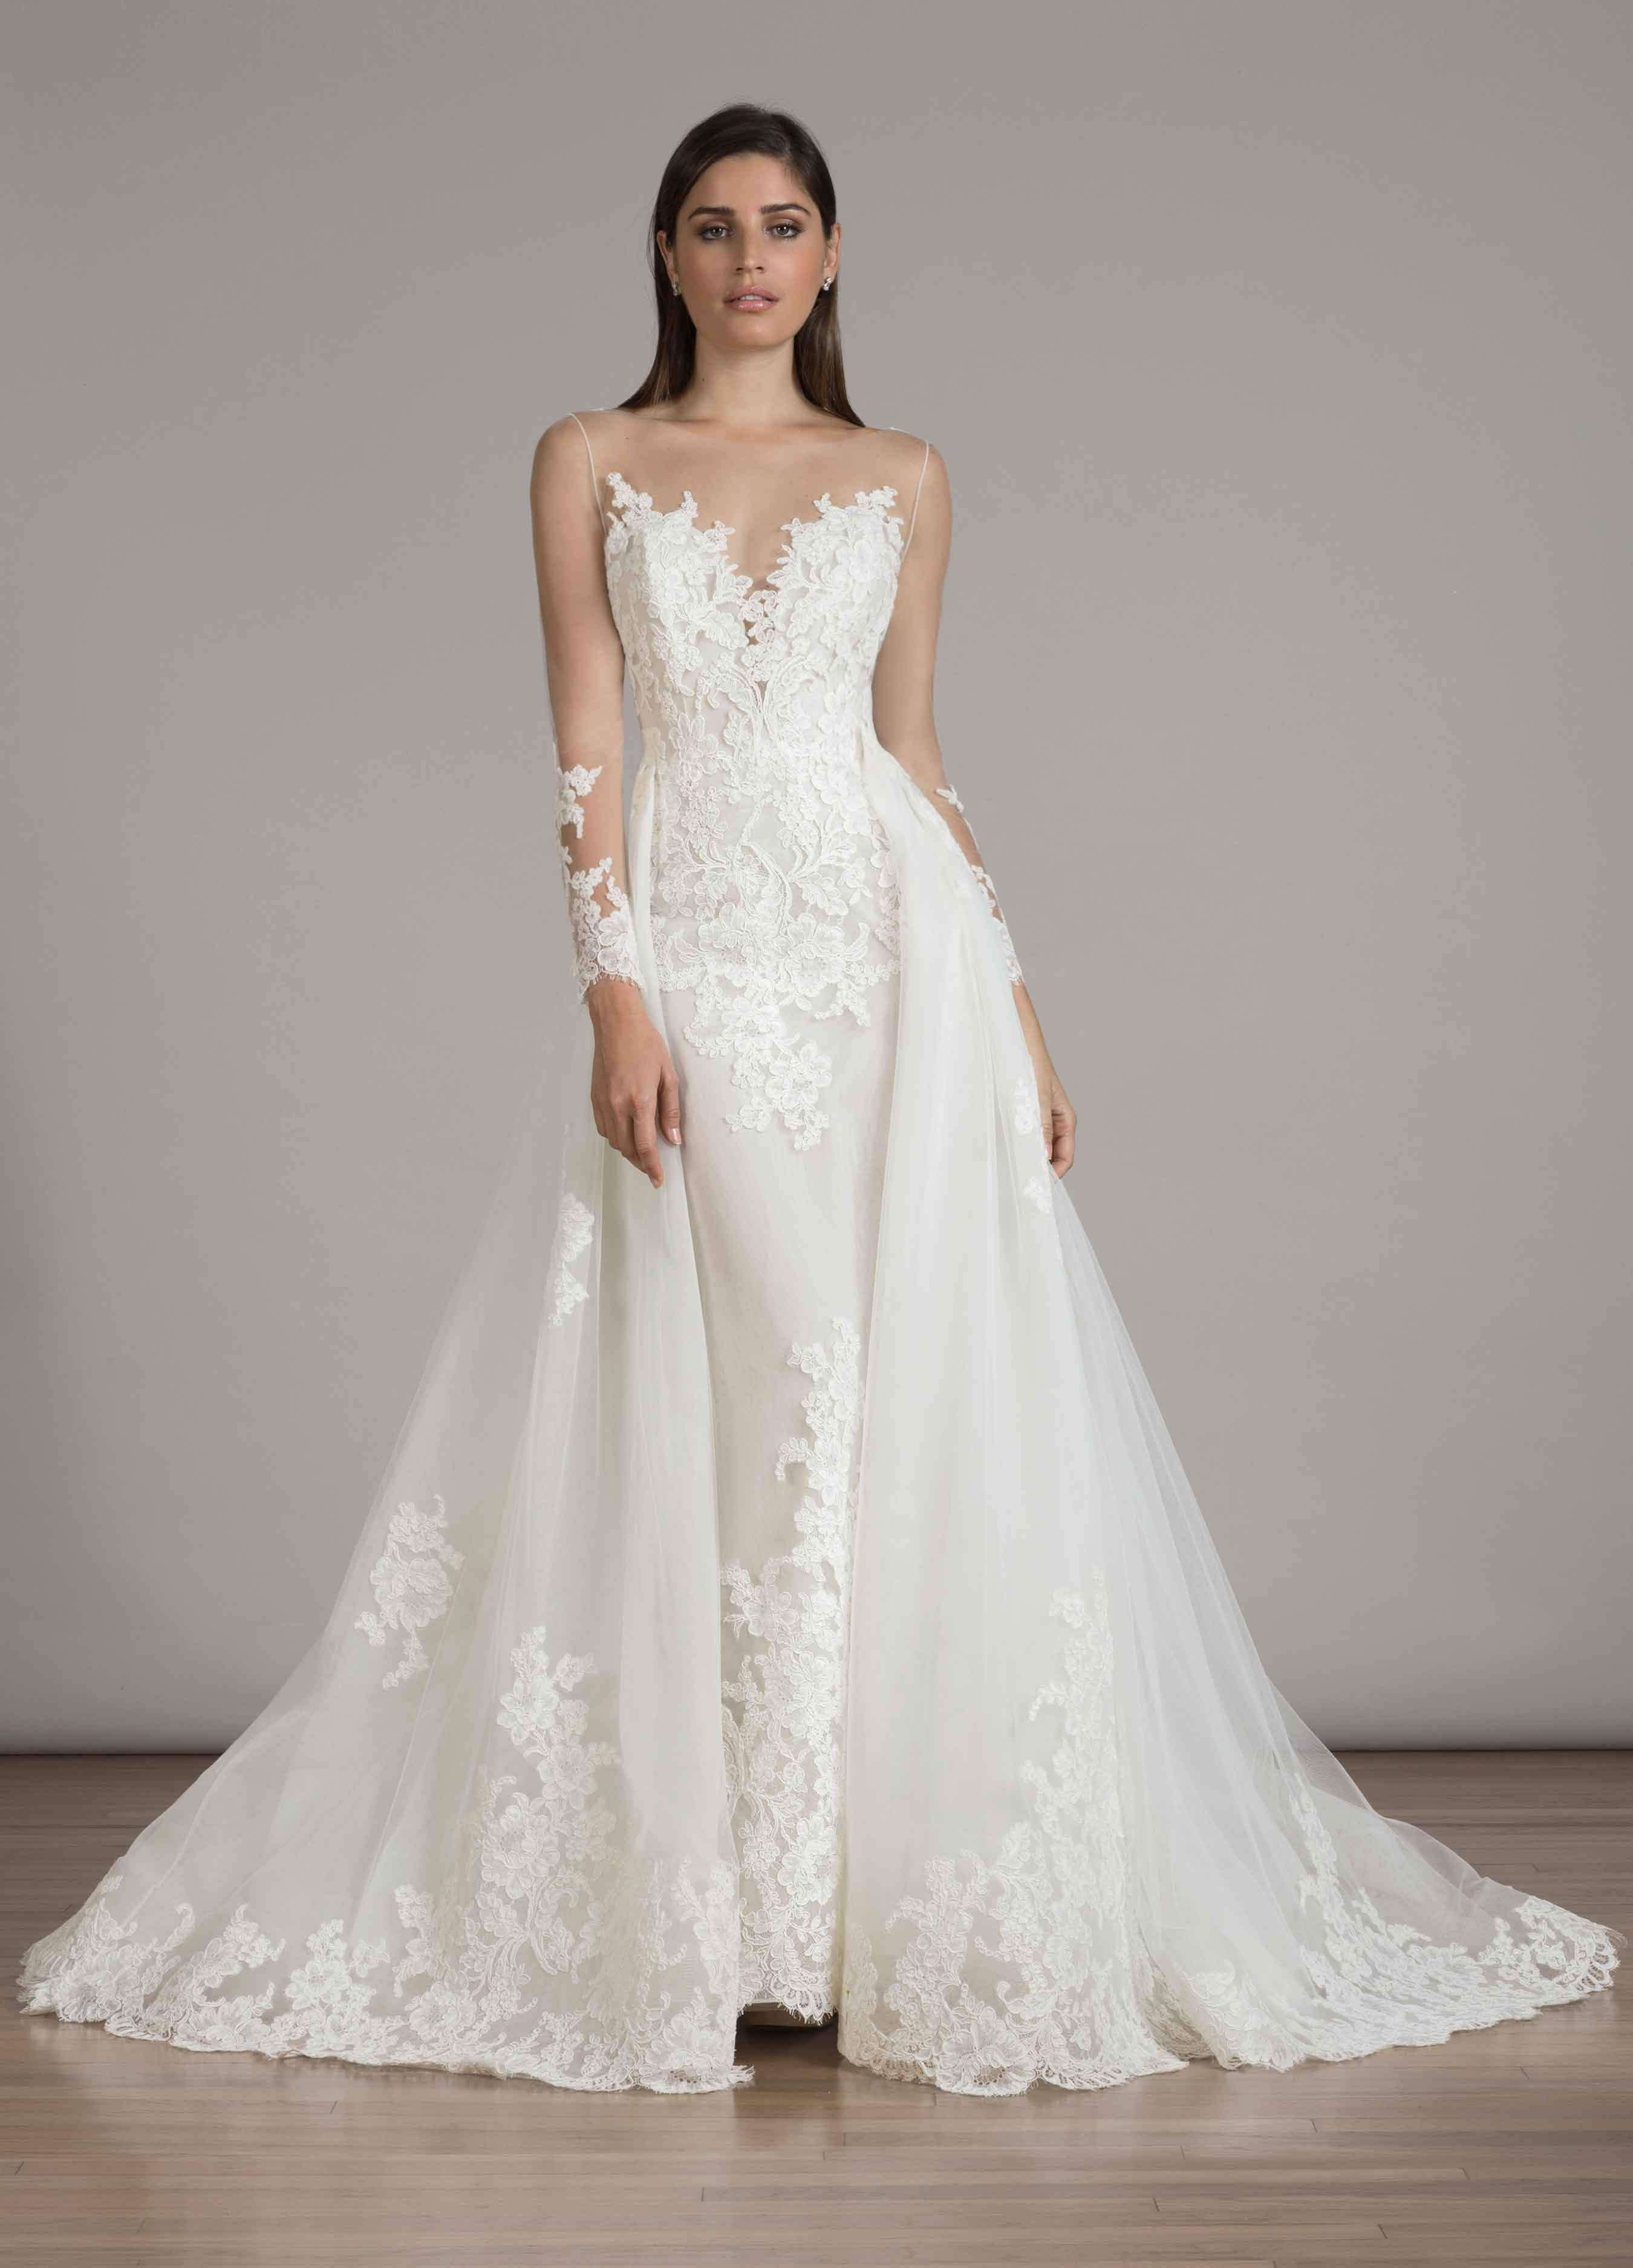 Sofia Vergara Wedding Gown Get The Look Inside Weddings